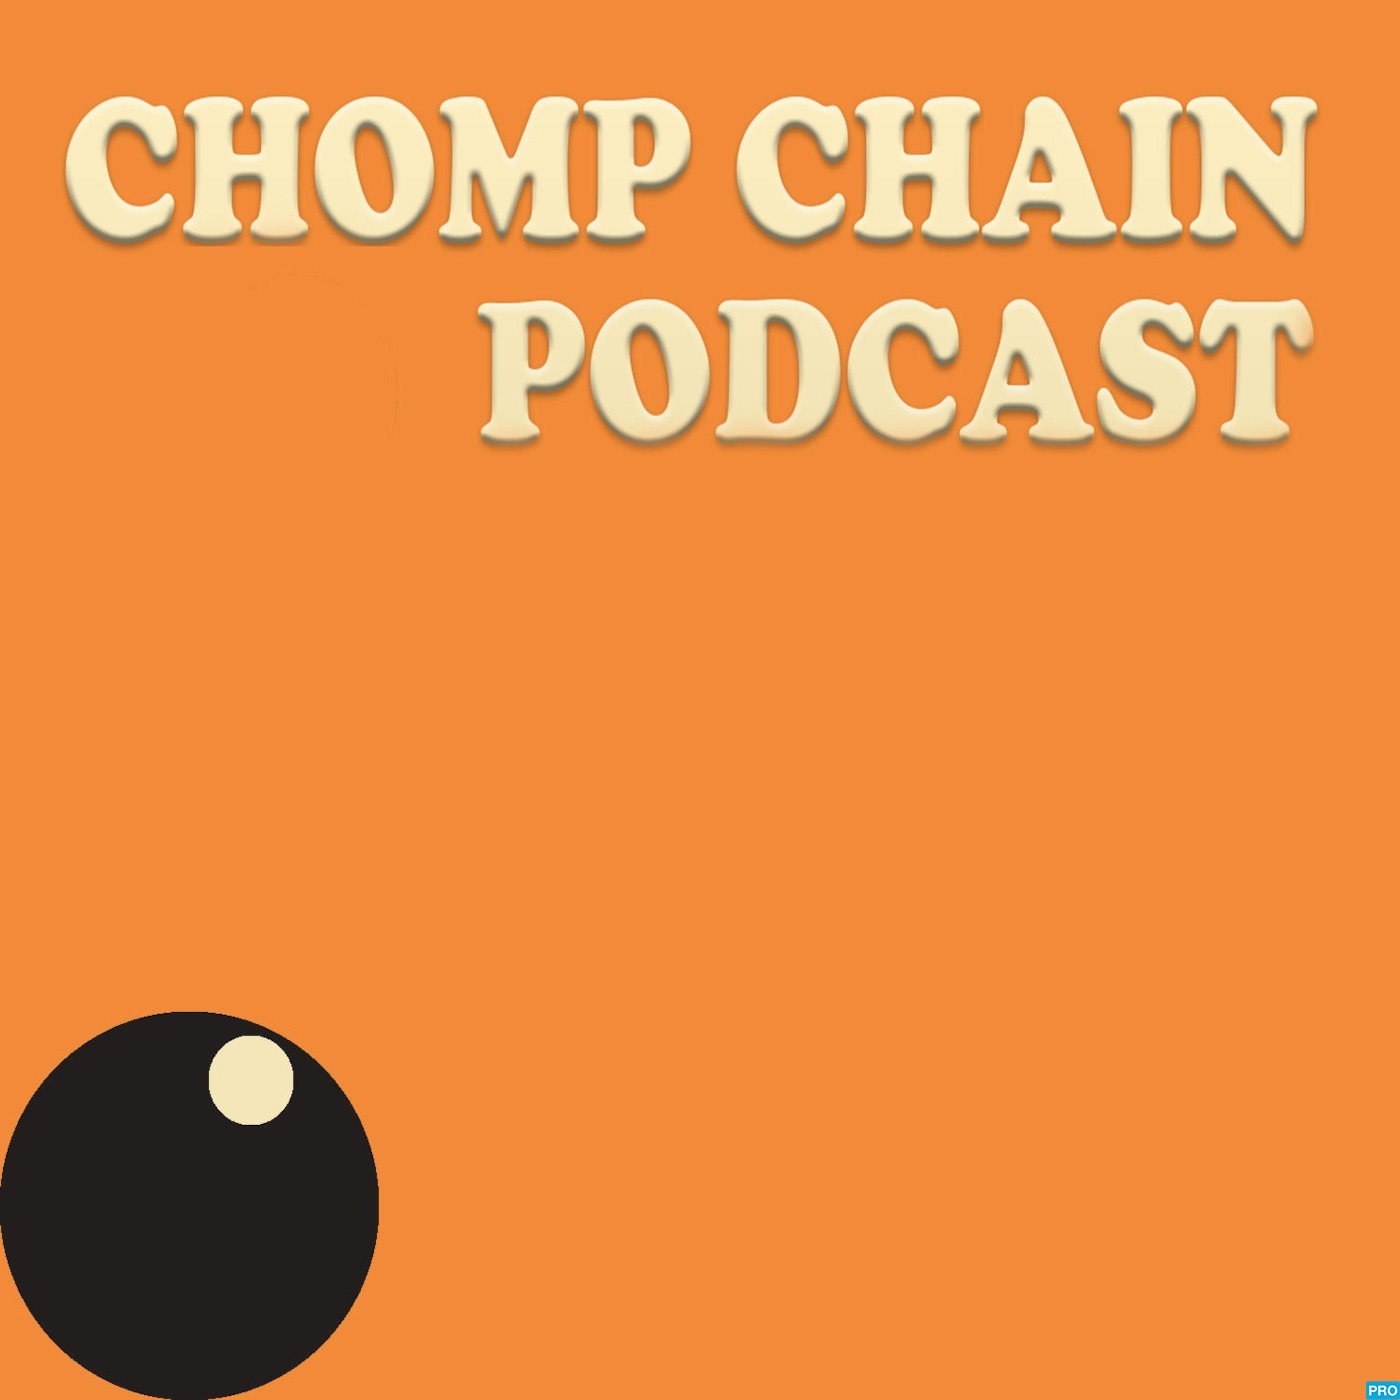 Chomp Chain Podcast